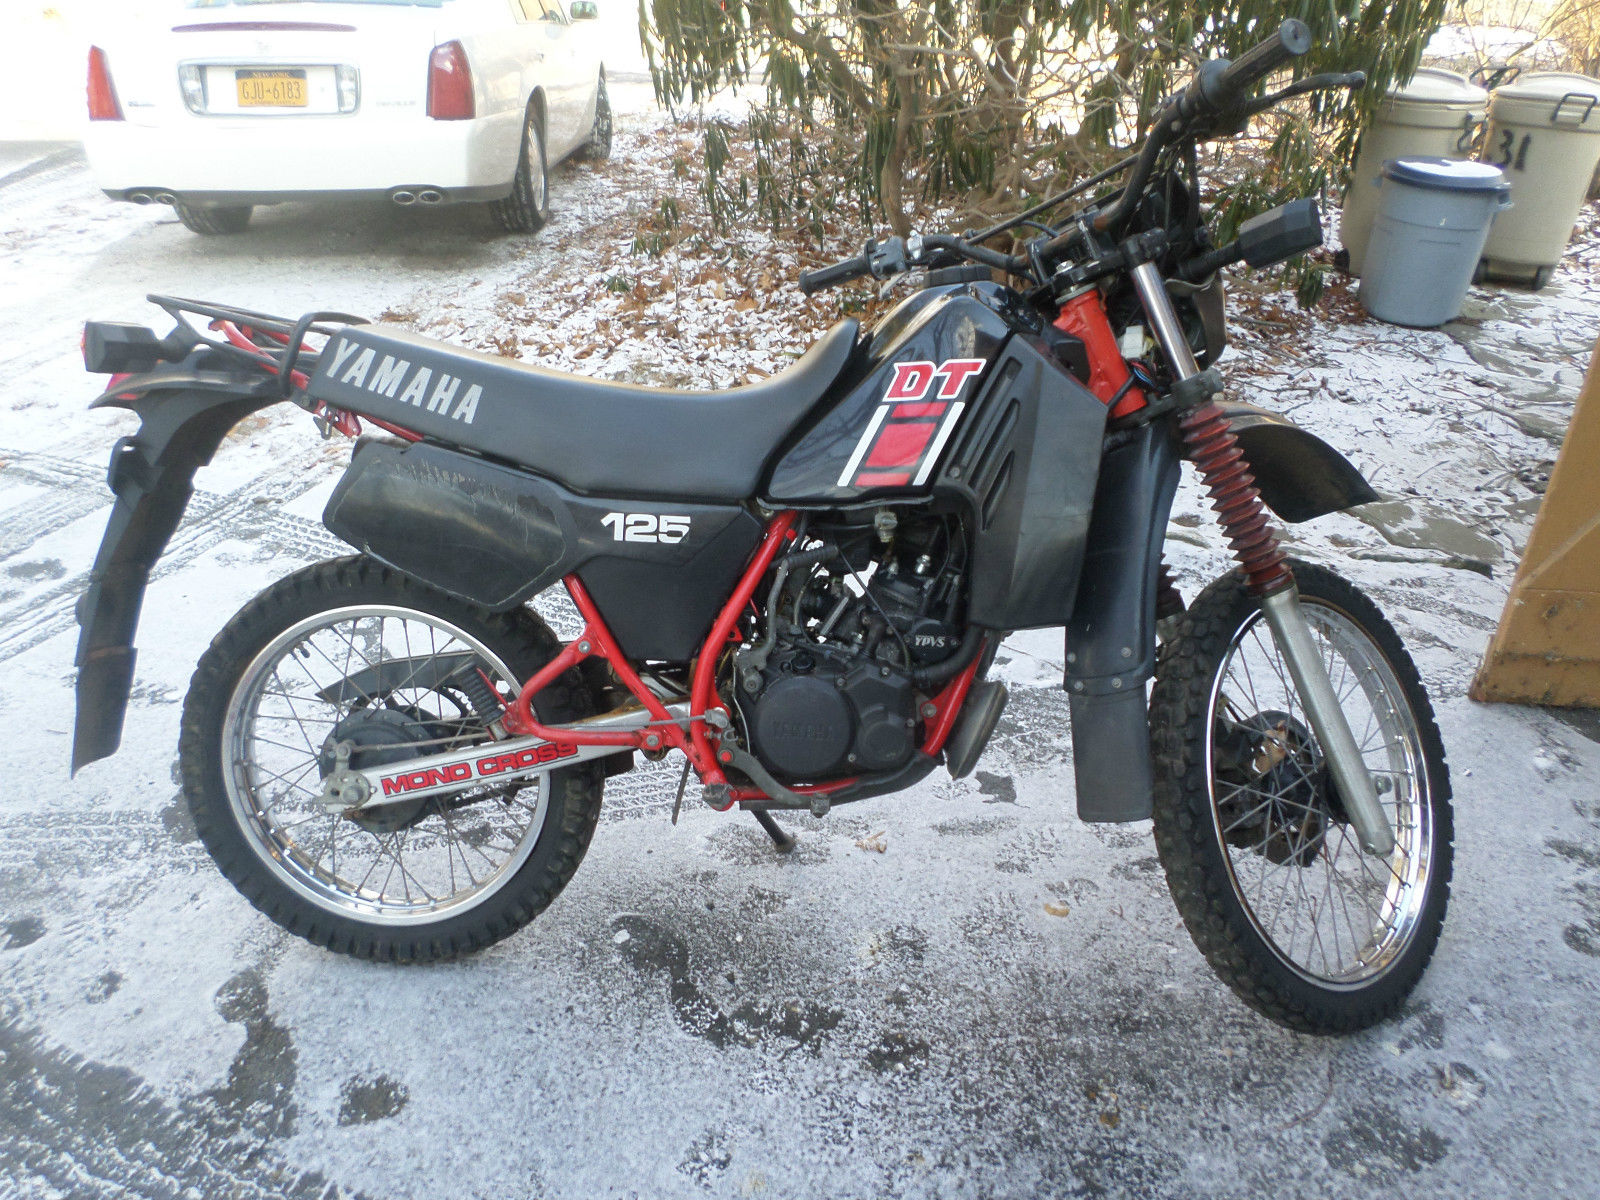 1989 yamaha dt 125 r pics specs and information. Black Bedroom Furniture Sets. Home Design Ideas